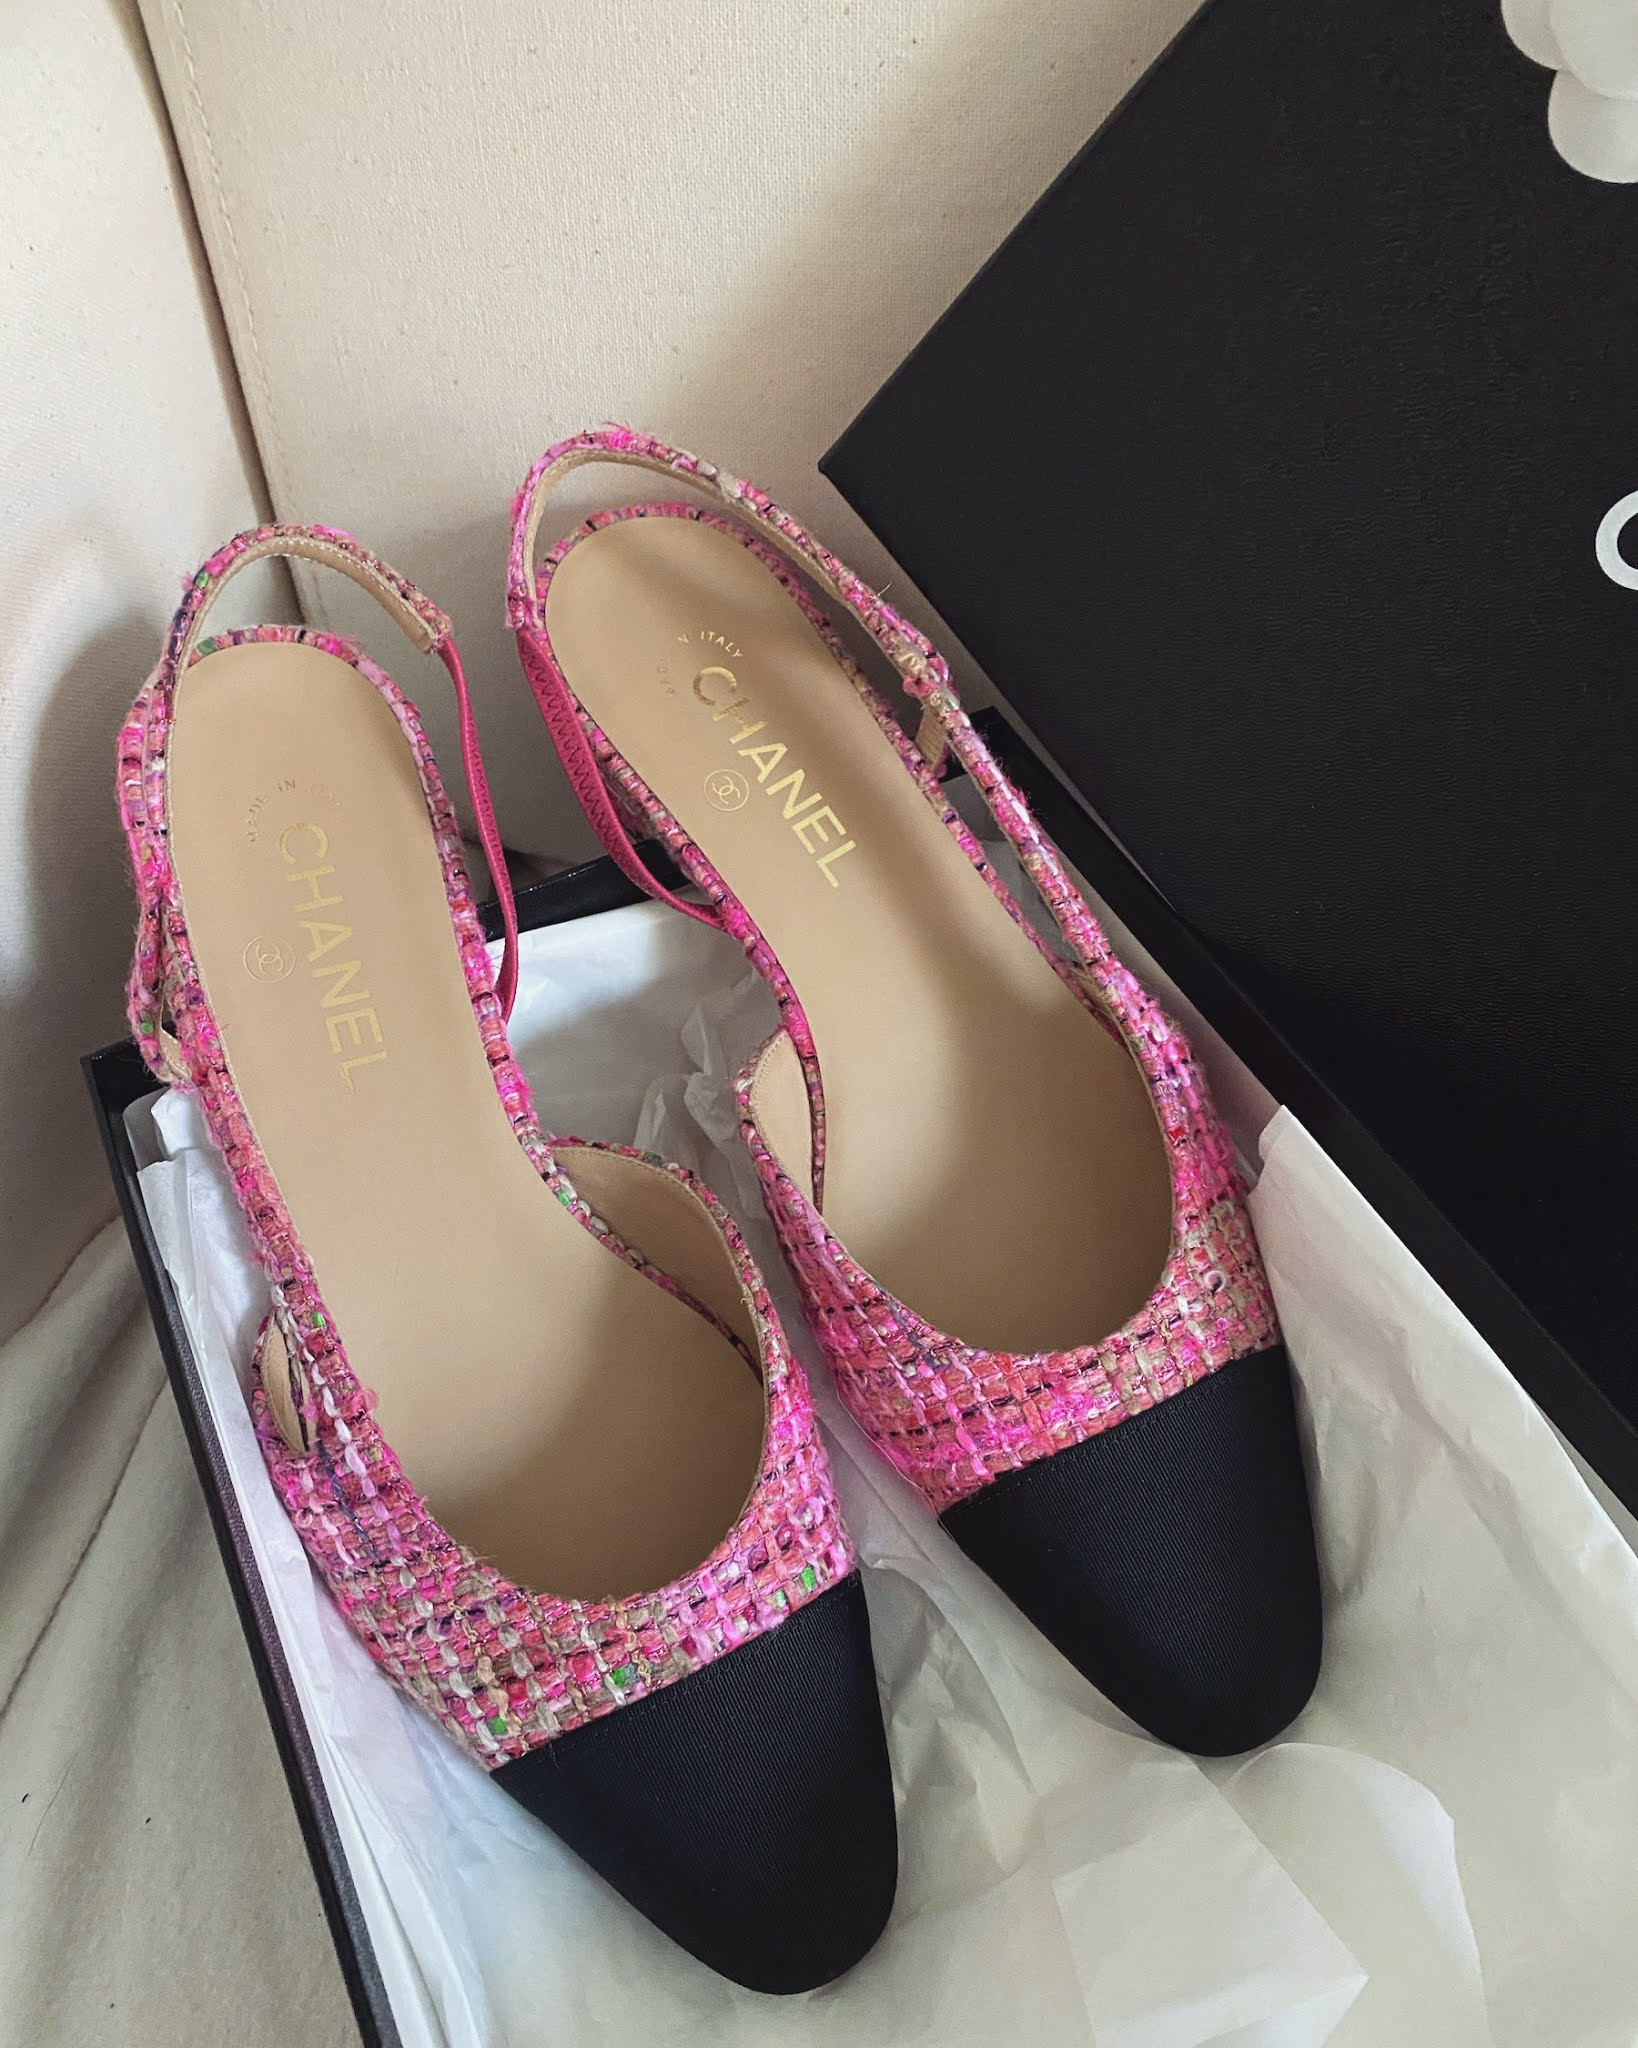 Chanel pink tweed cap toe shoes